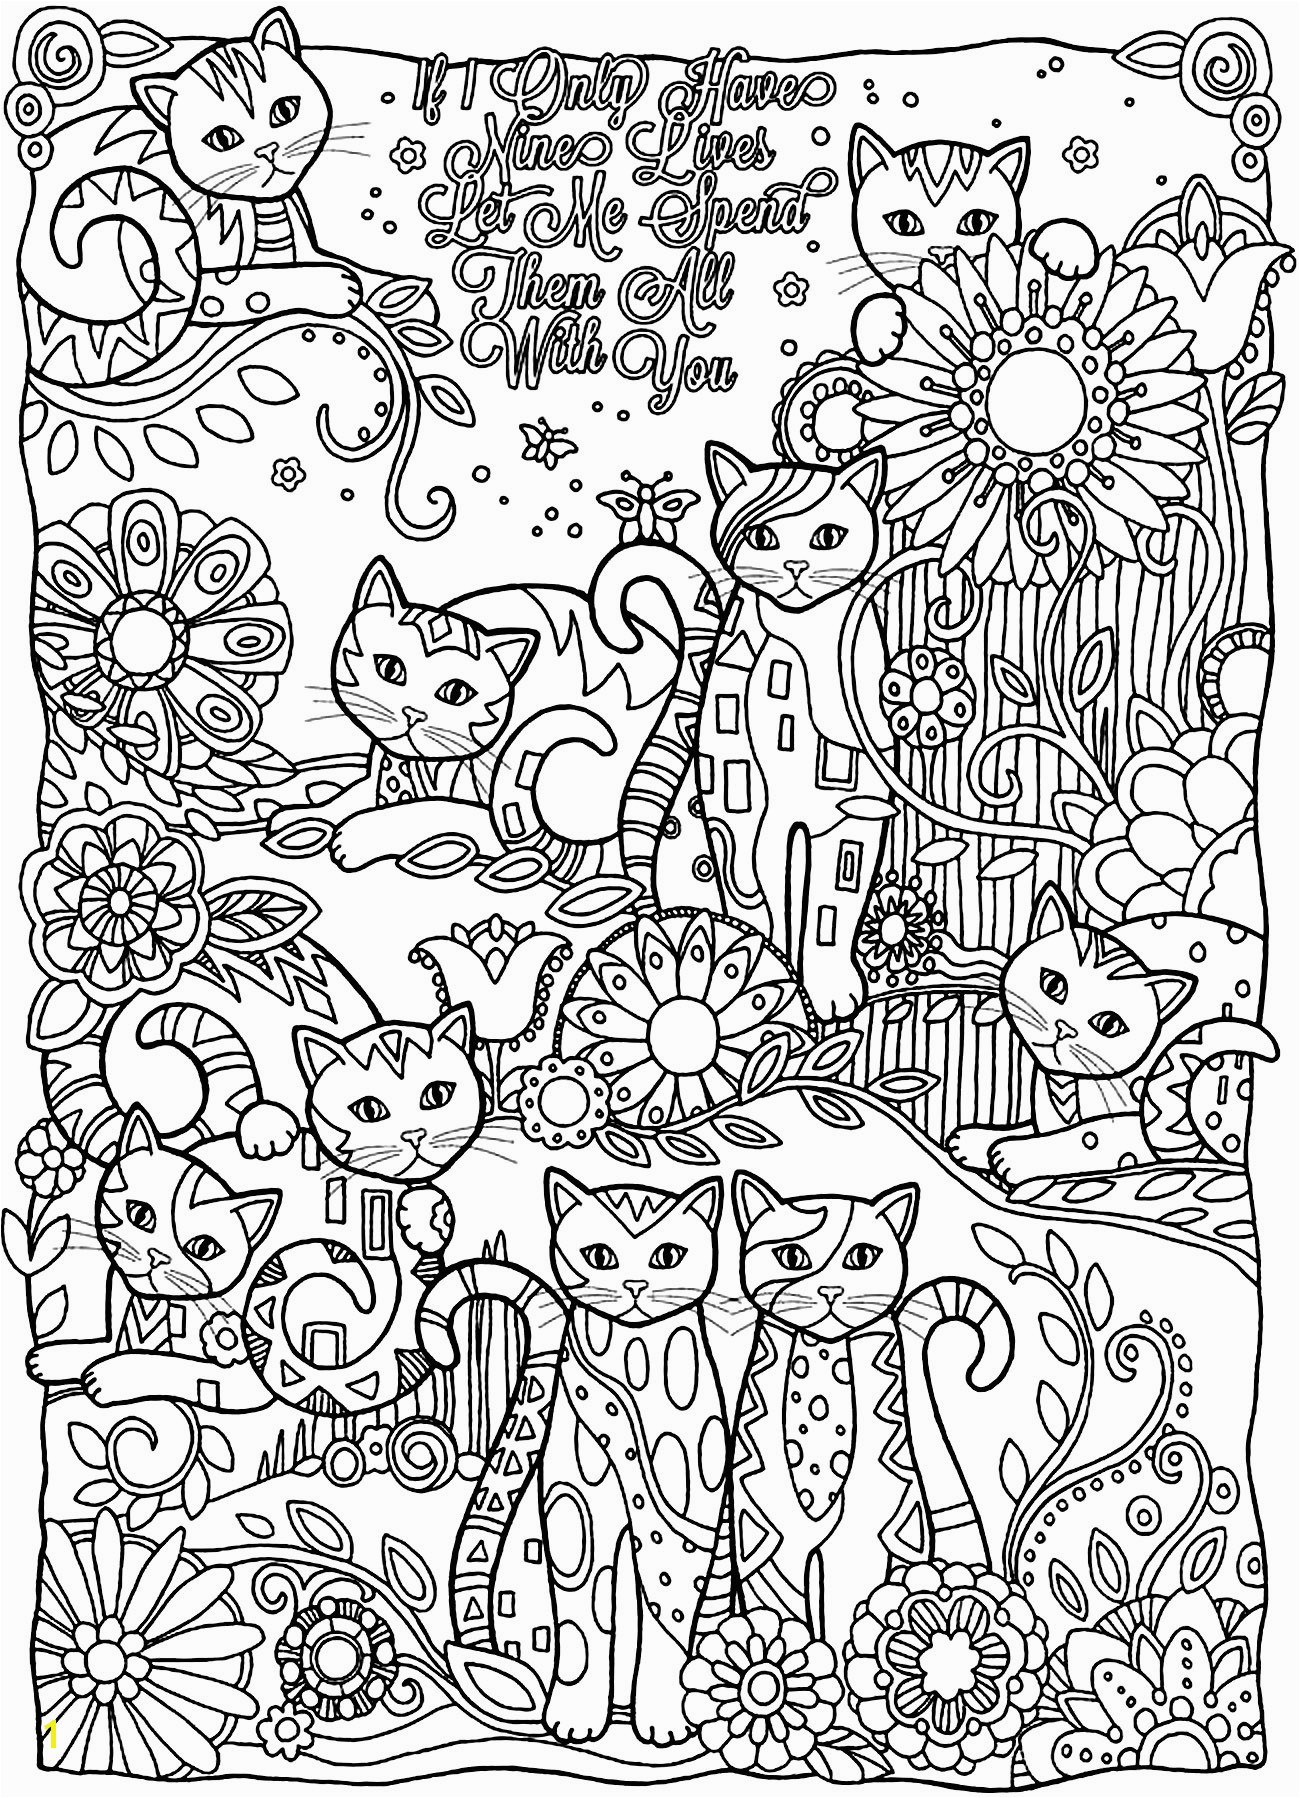 Scary Black Cat Coloring Pages Luxury Zentangle Coloring Pages Fresh Best Od Dog Coloring Pages Free